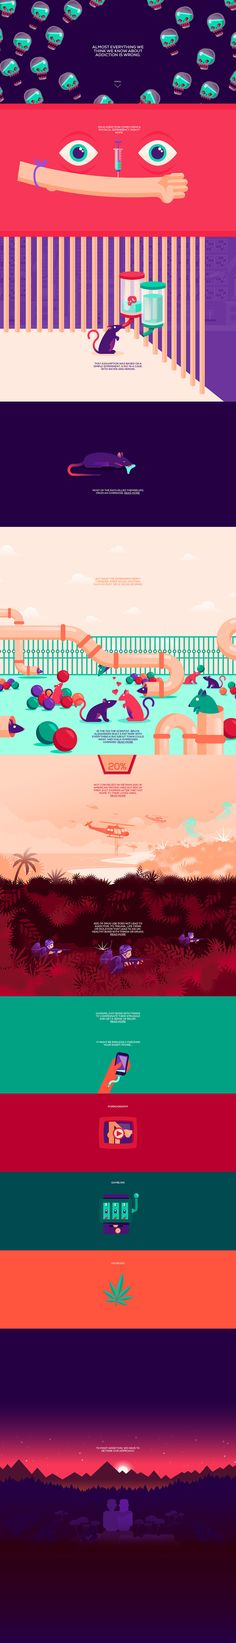 Beautifully illustrated animations in this colorful One Pager bringing awareness to the truths behind addiction. Great to see serious topics being executed well in an interactive Single Page website - stellar work this by Moby Digg.